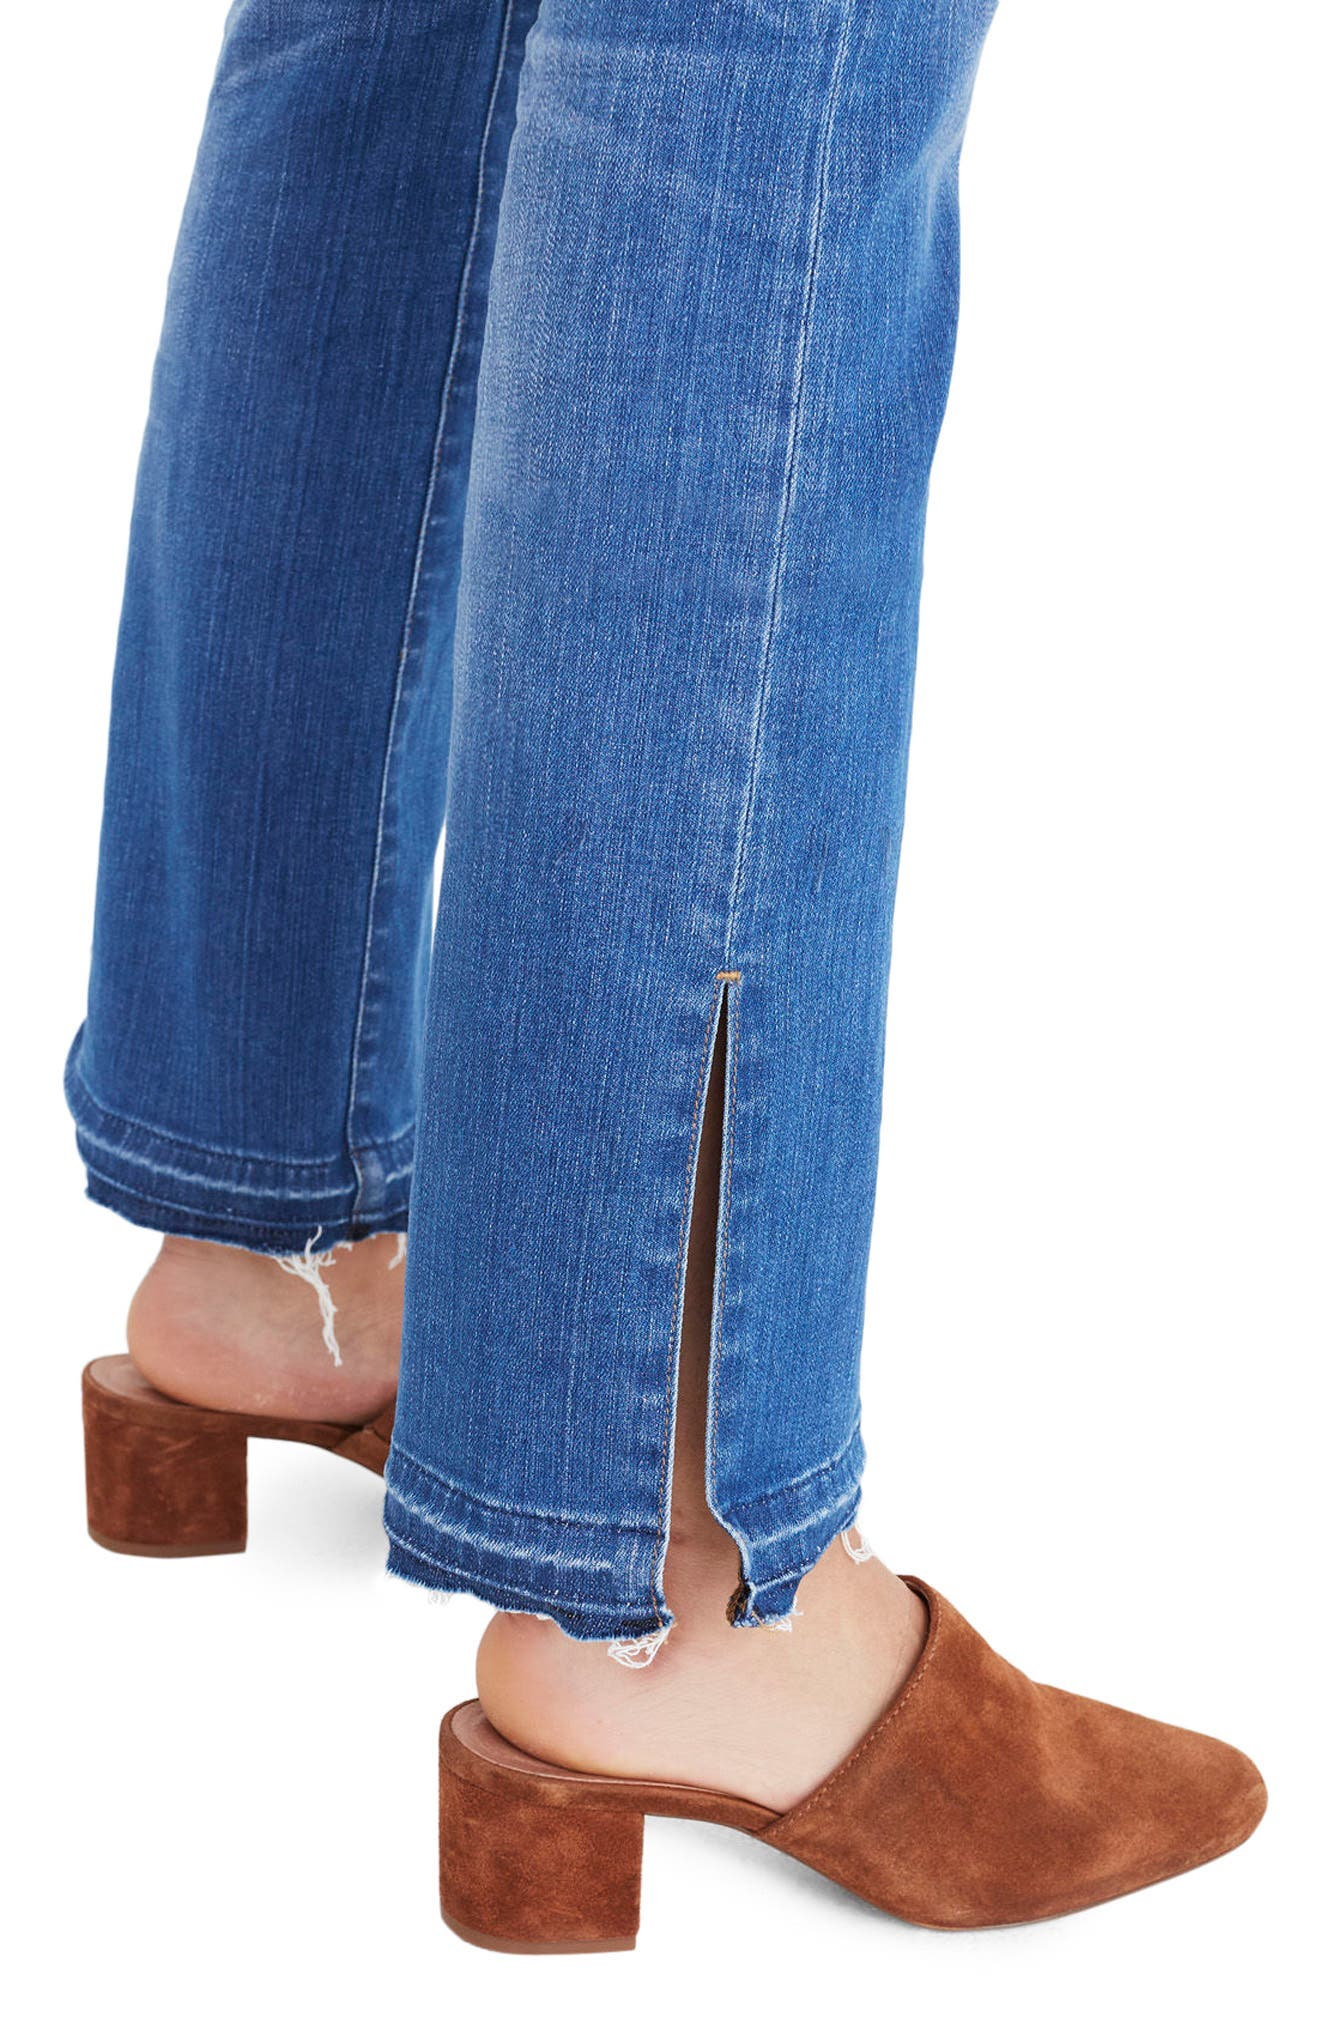 MADEWELL,                             Cali Split Hem Demi Boot Jeans,                             Alternate thumbnail 2, color,                             421